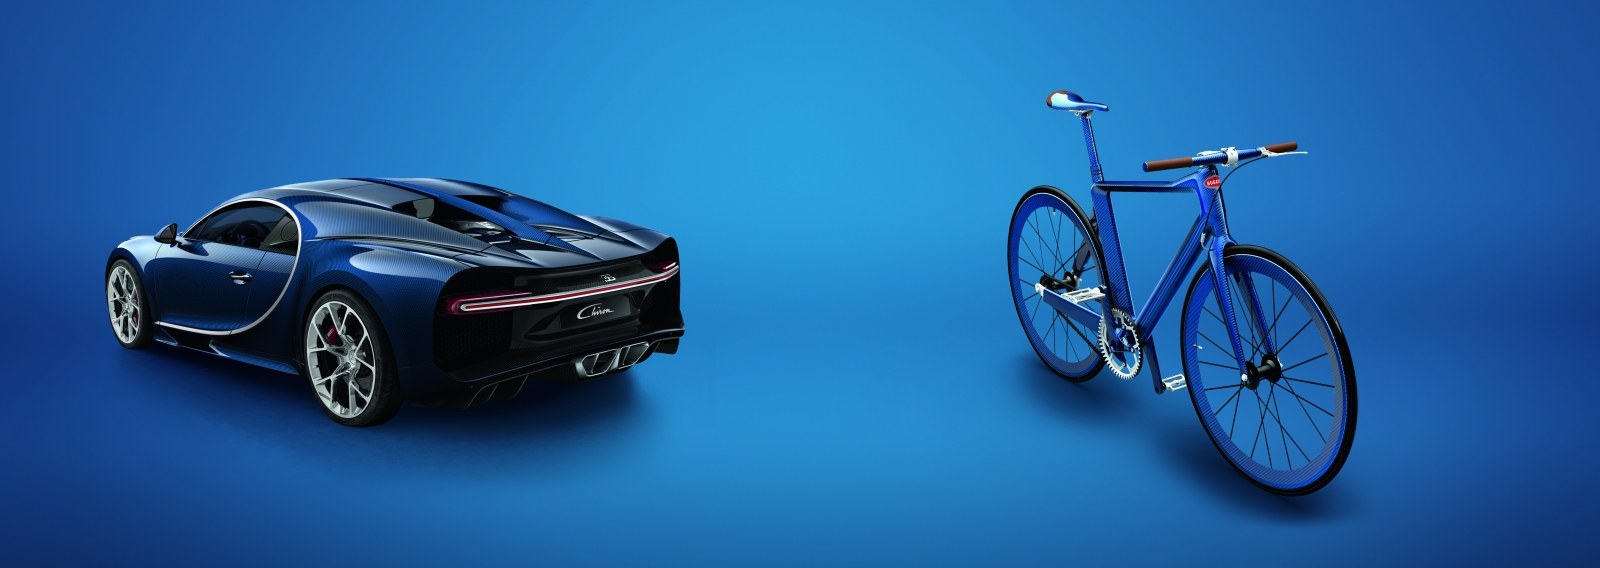 bugatti launches ultra luxurious bicycle that 39 ll match your supercar for a cool 30 000. Black Bedroom Furniture Sets. Home Design Ideas